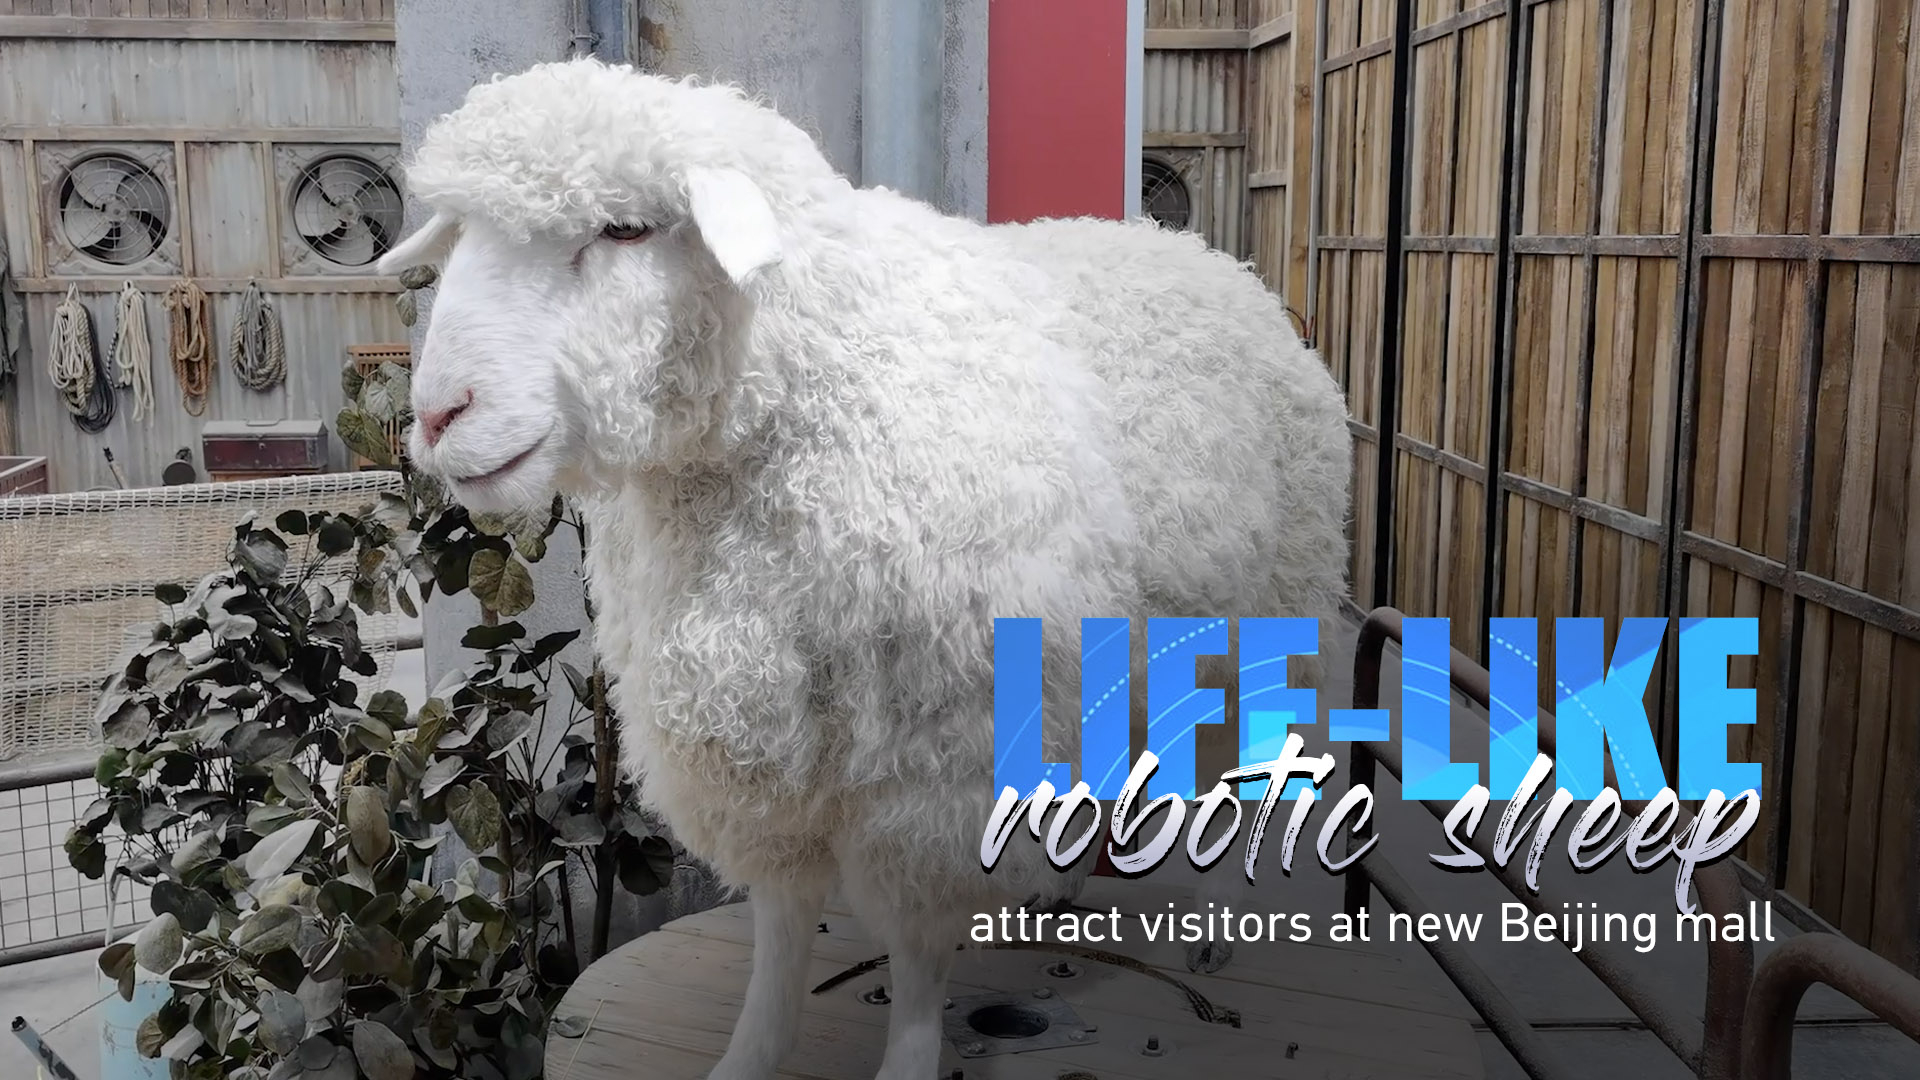 Life-like robotic sheep attract visitors at new Beijing mall